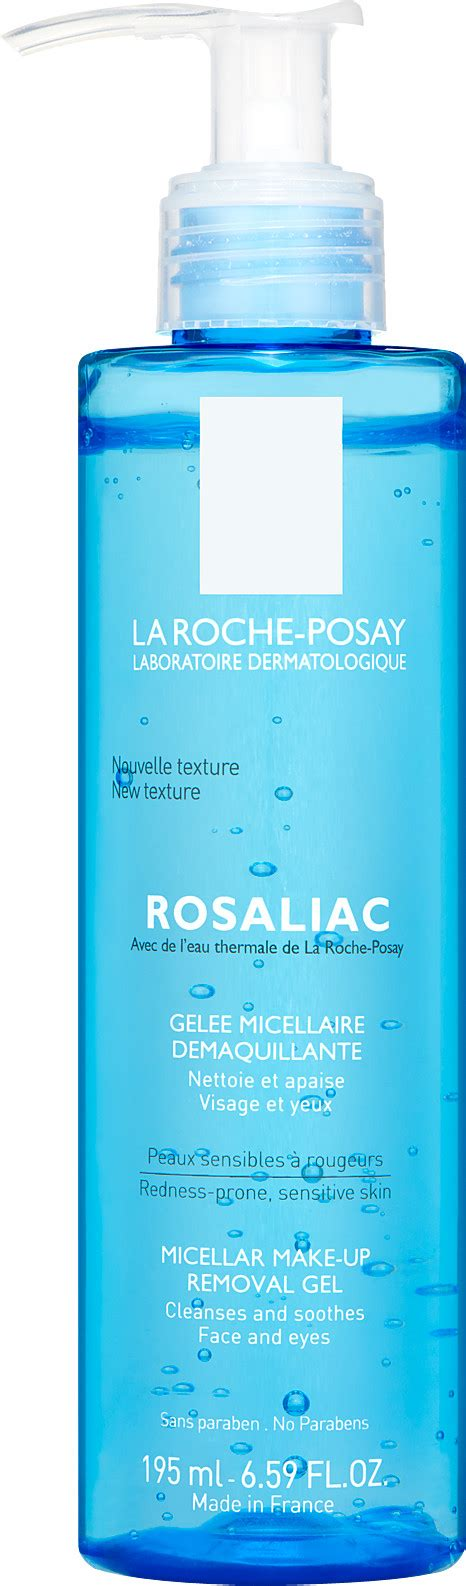 La Roche-Posay Rosaliac Micellar Make-Up Removal Gel